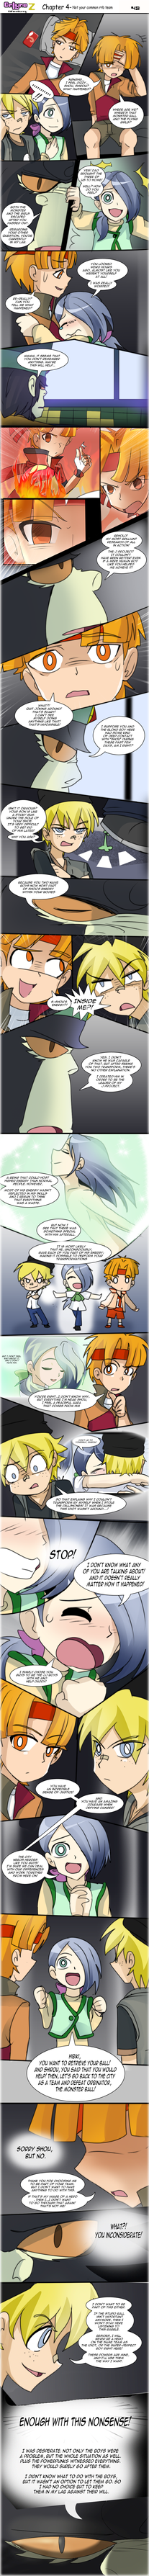 Onlyne Z Chap.4- Not your common rrb team 43 by BiPinkBunny